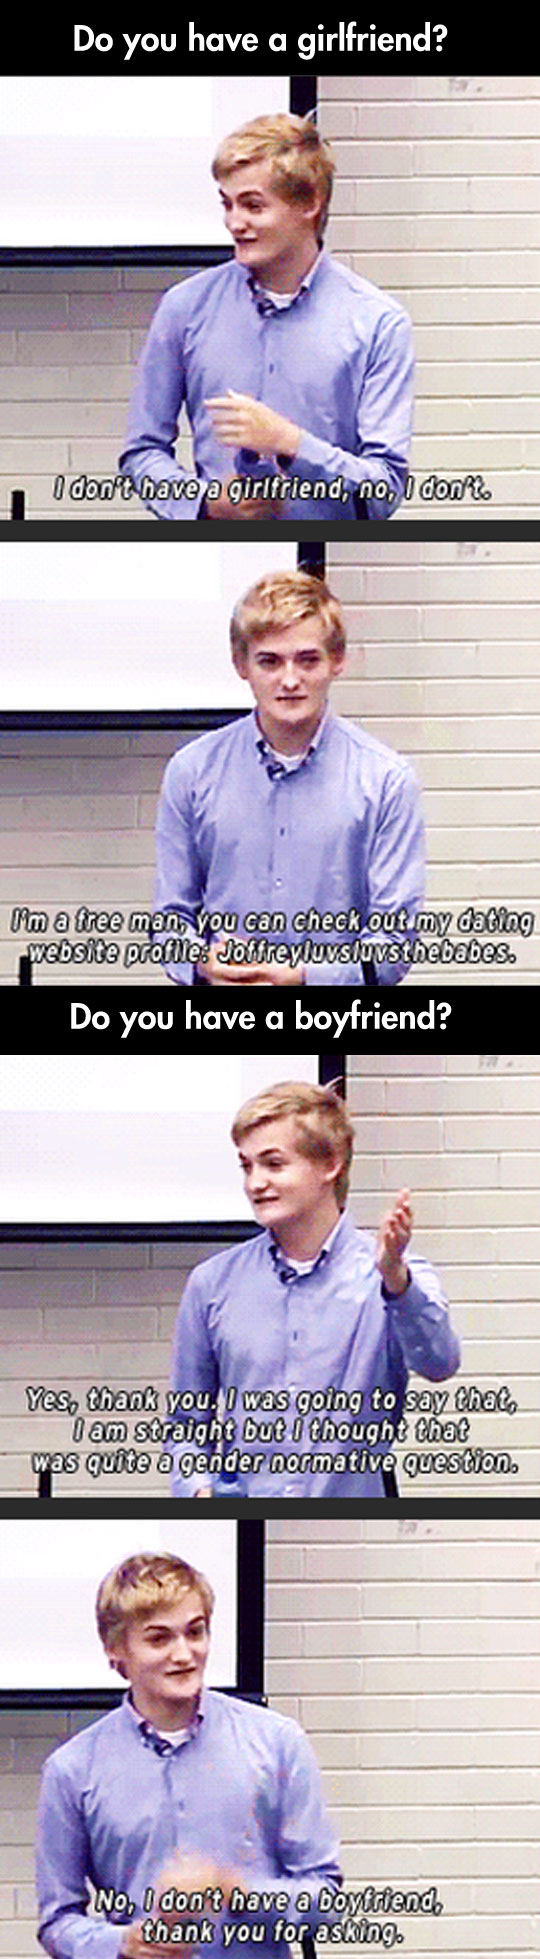 What an actually considerate and cool guy…